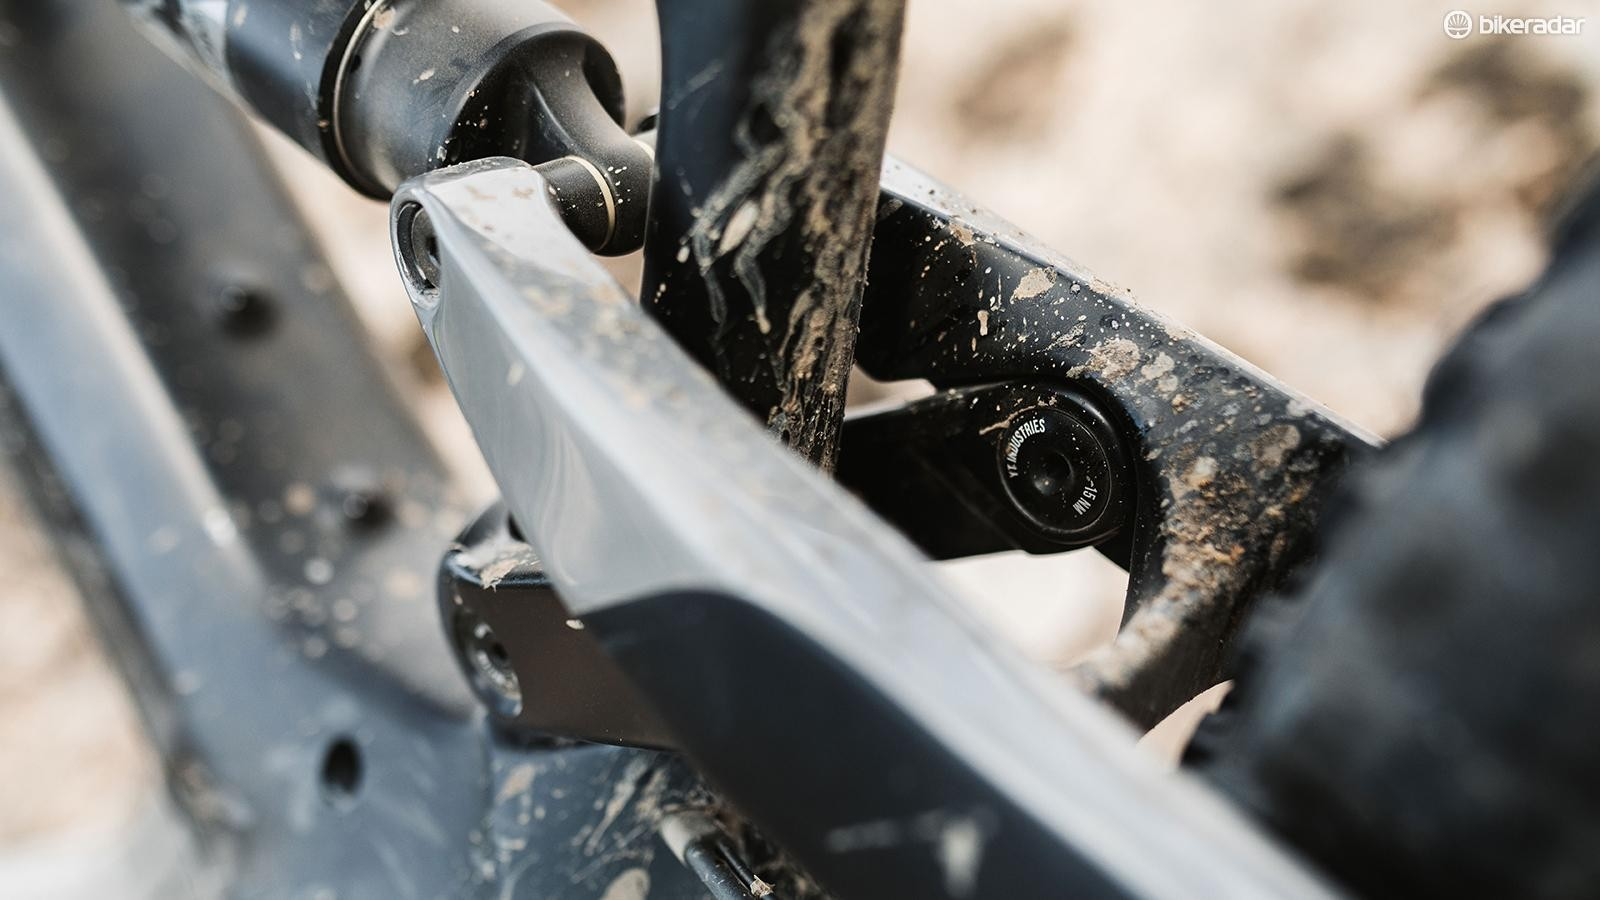 The bearings on the link are accessed internally to help the bike look clean